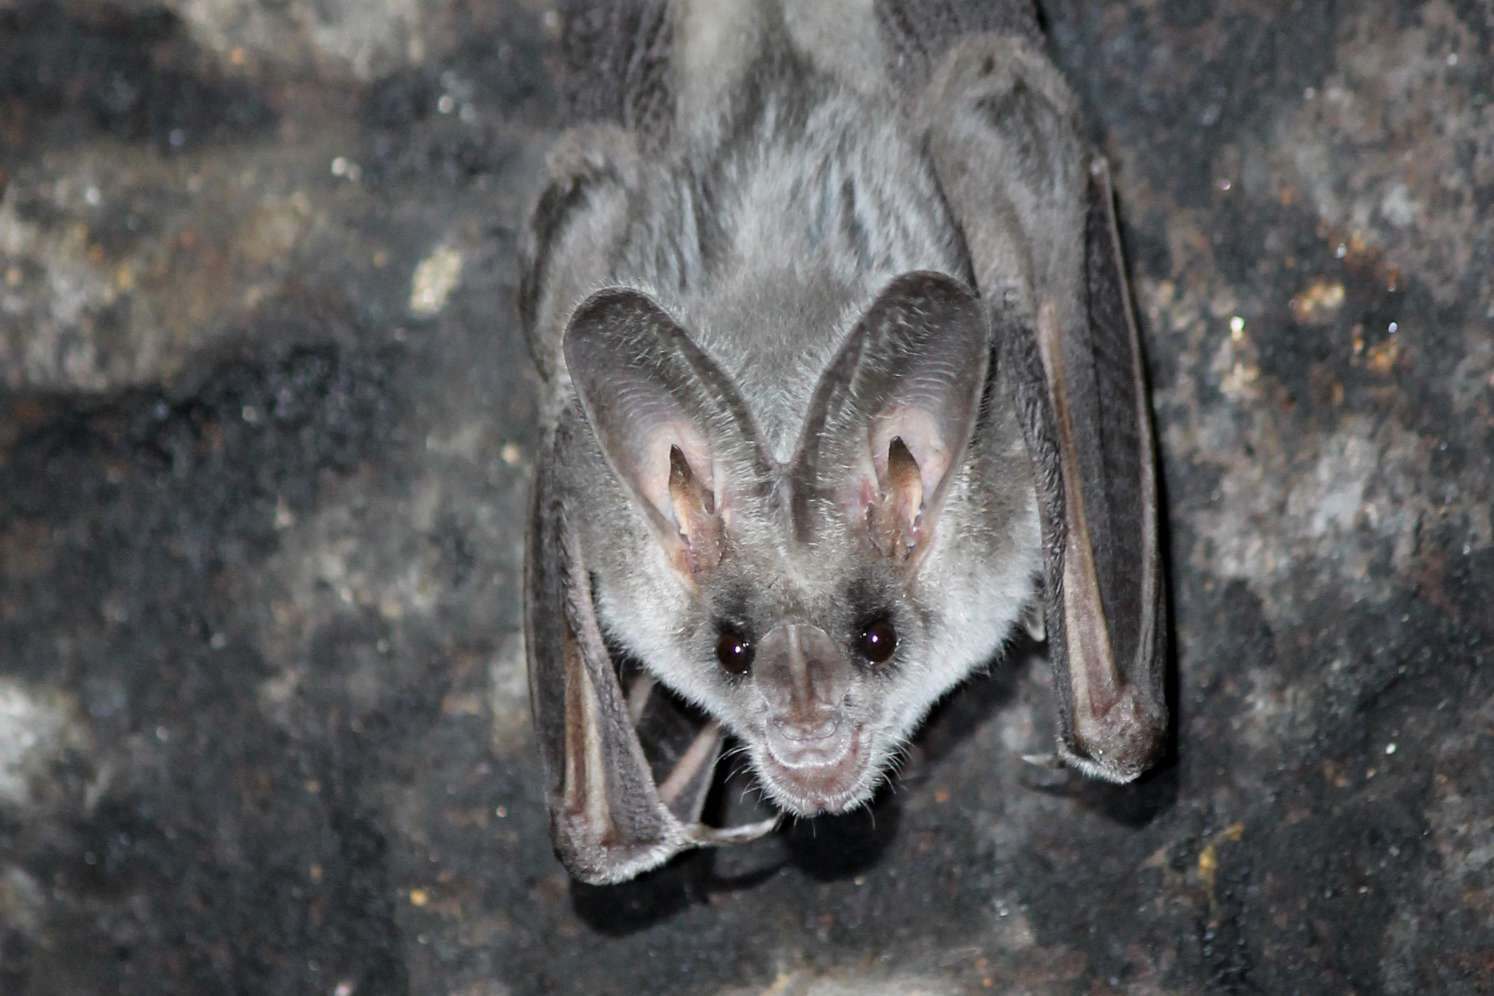 A gray bat hangs from its feet in a rocky cave